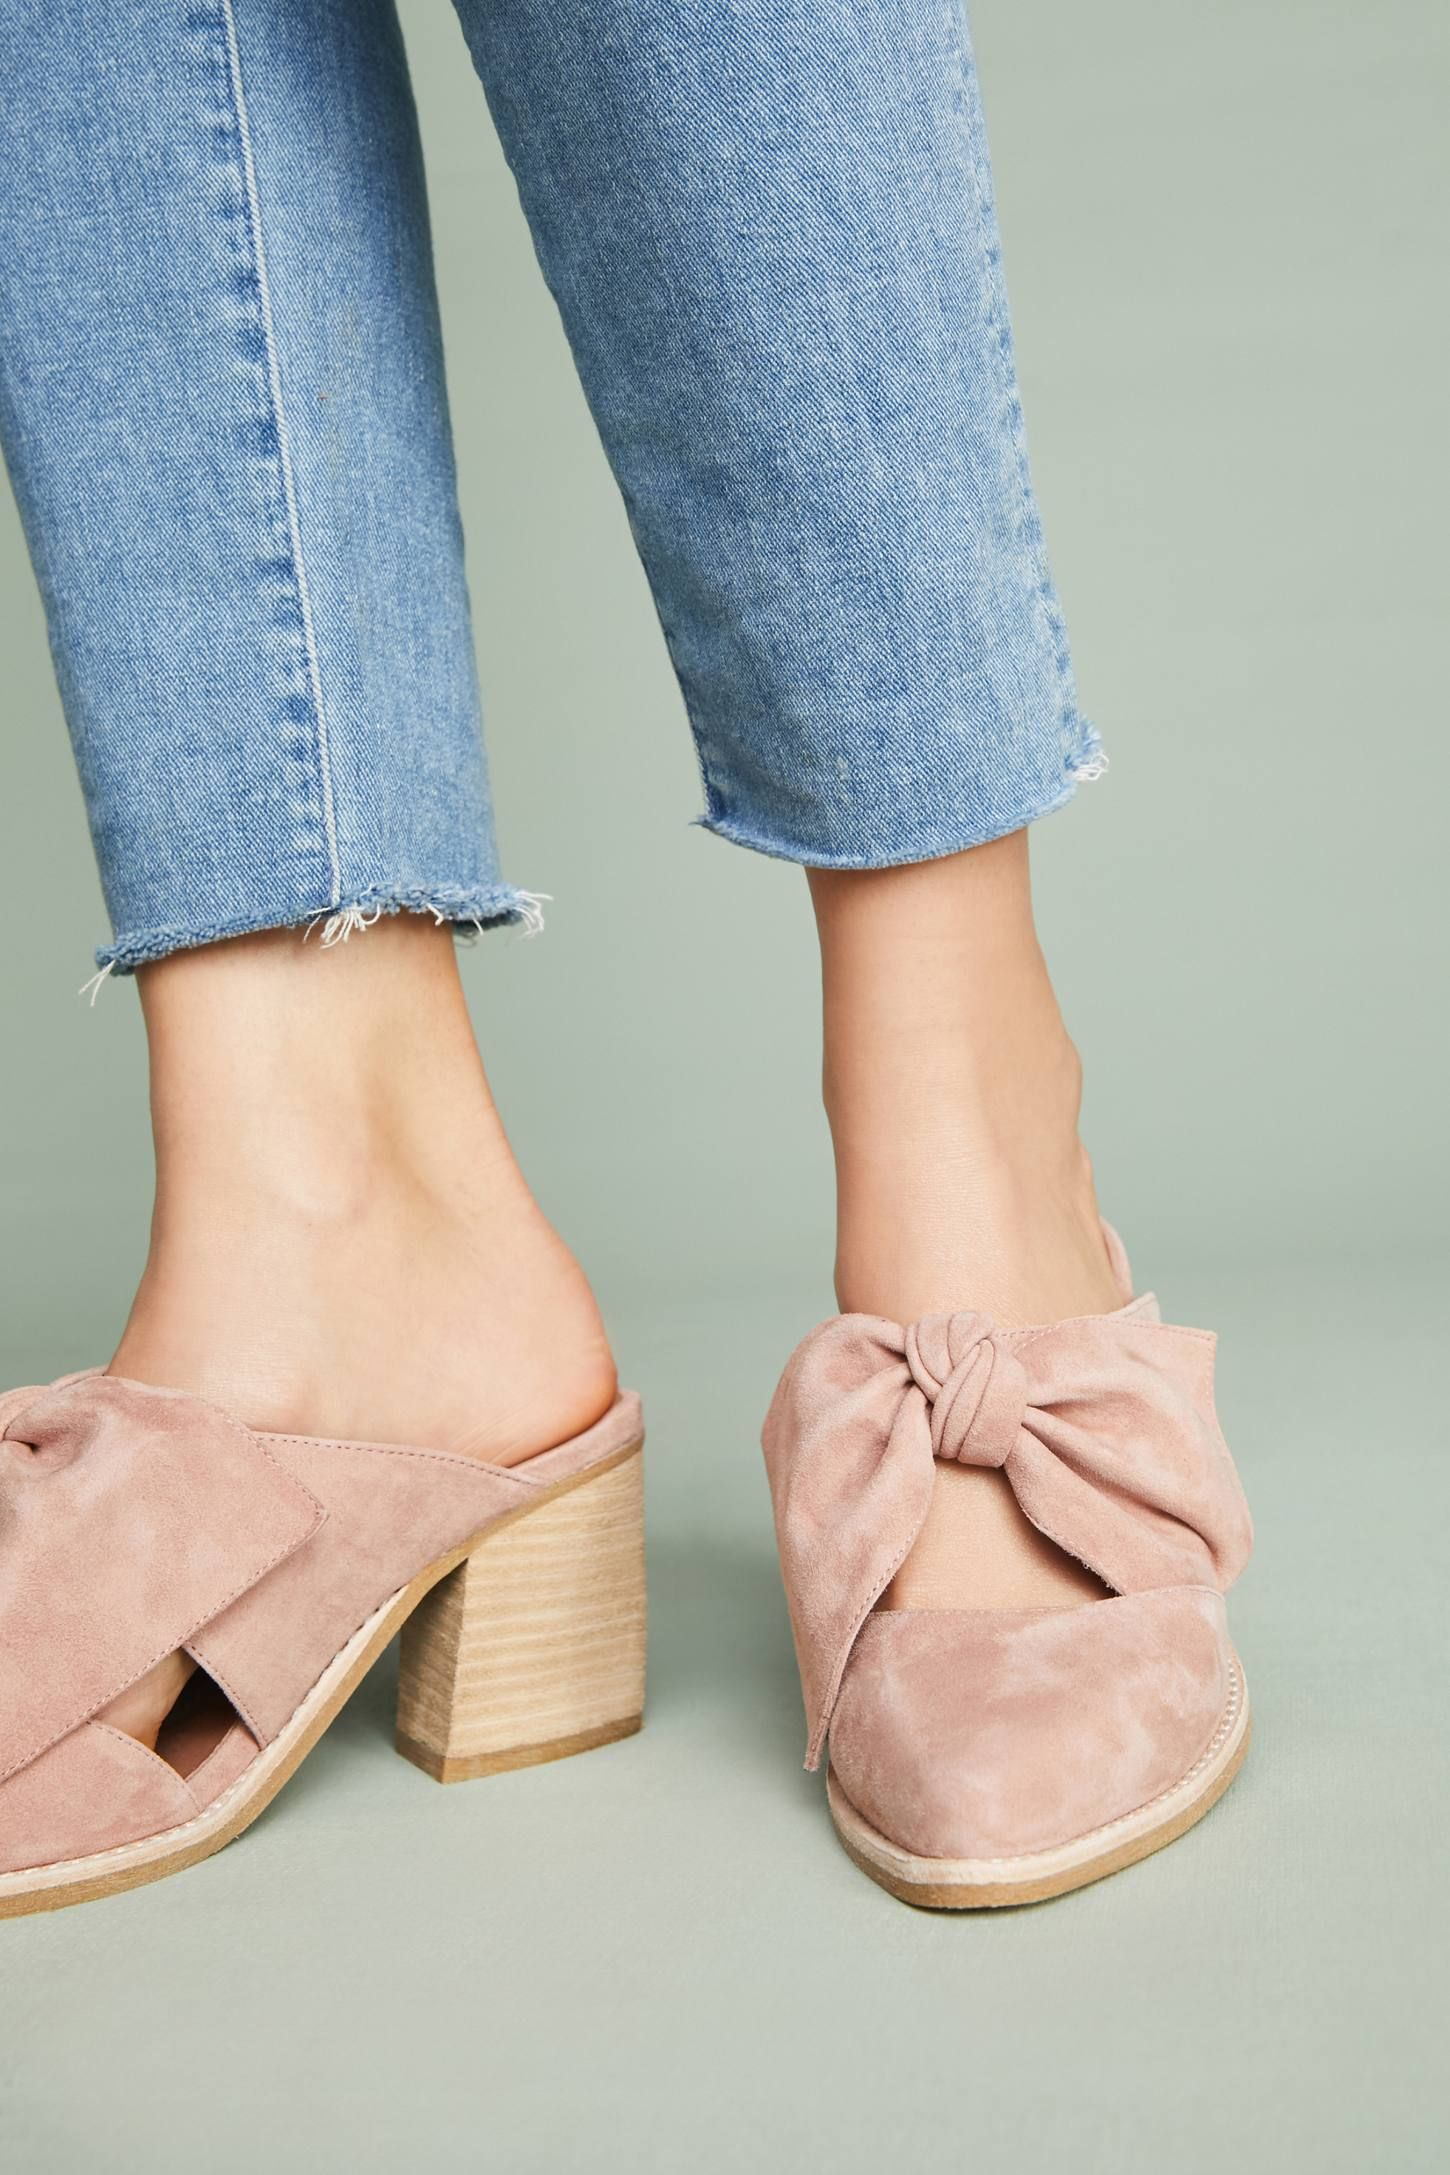 4f4963382b0 Shop the Jeffrey Campbell Cyrus Bow Mules and more Anthropologie at  Anthropologie today. Read customer reviews